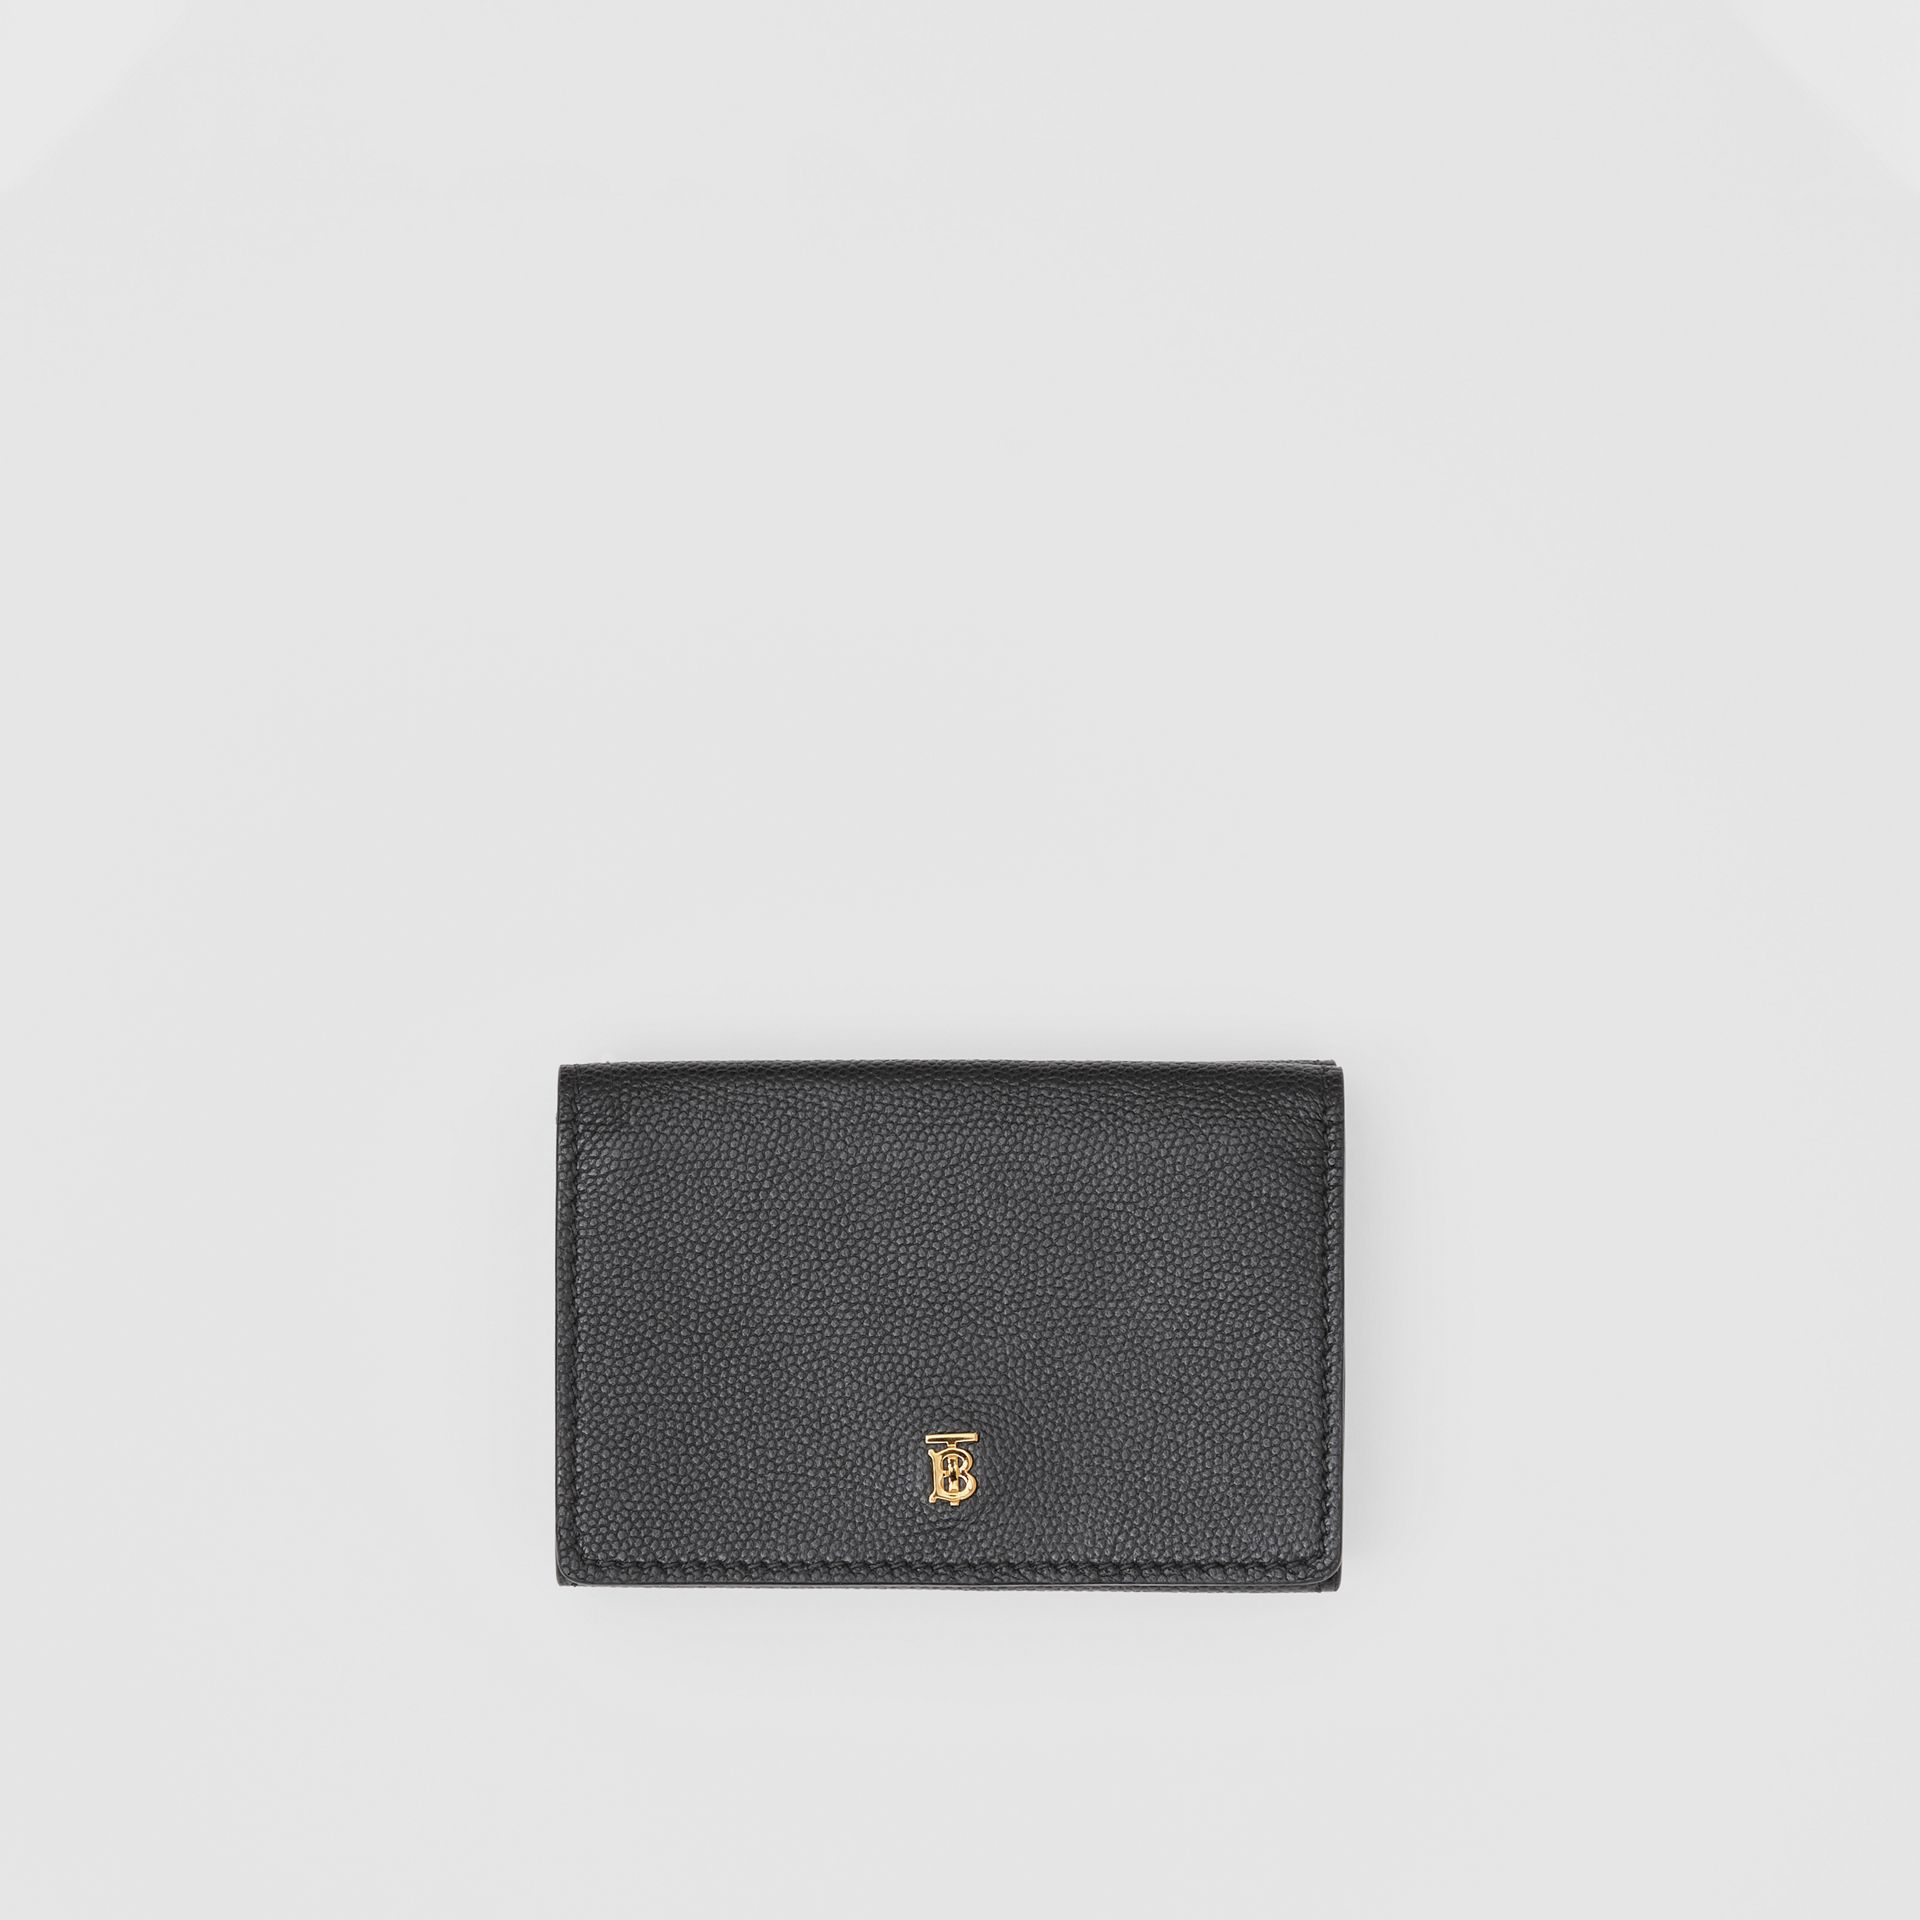 Small Grainy Leather Folding Wallet in Black - Women | Burberry Canada - gallery image 0